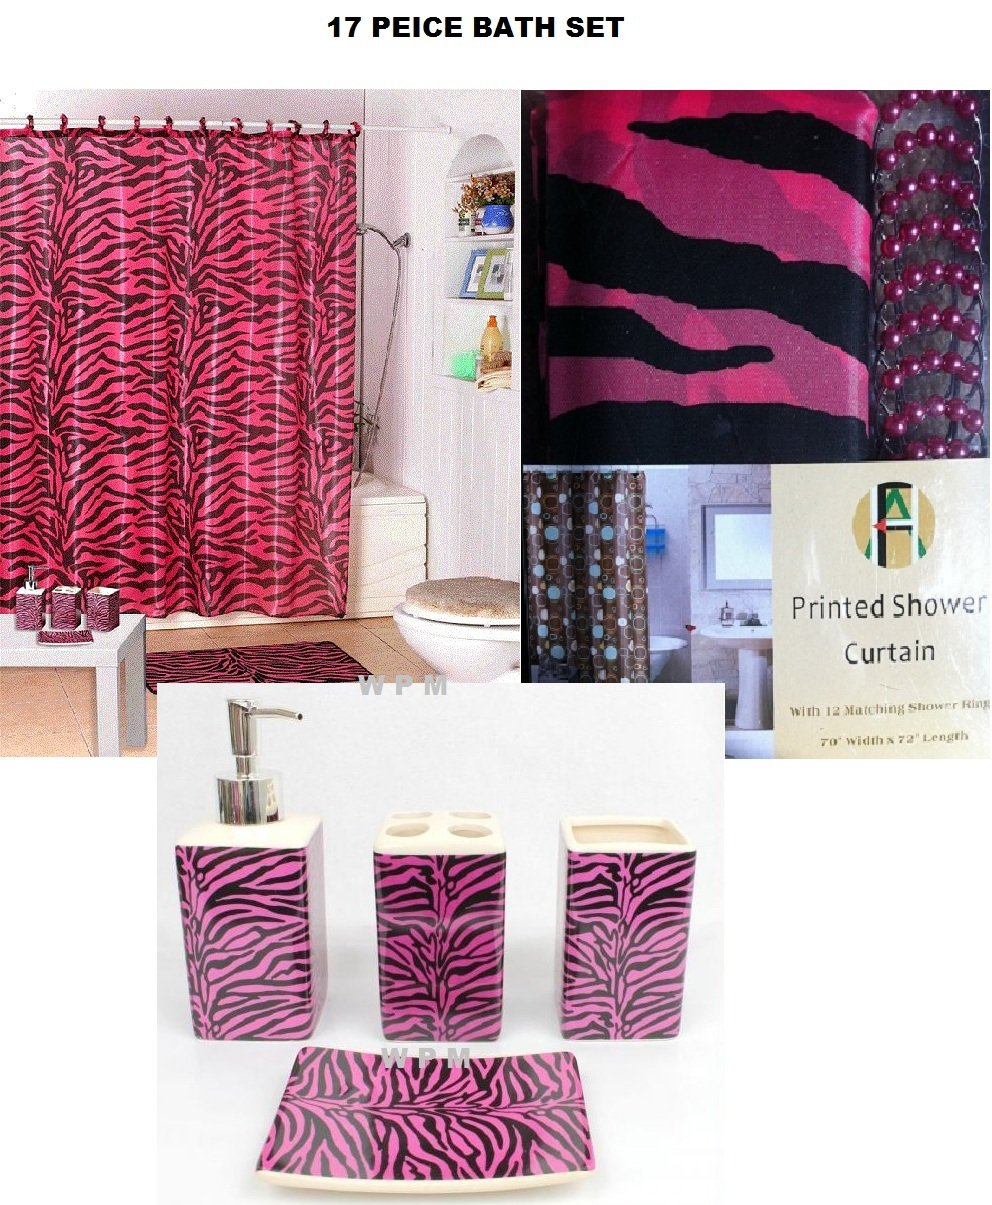 Cheetah bathroom set - Beautiful animal print for bathroom | Home ...